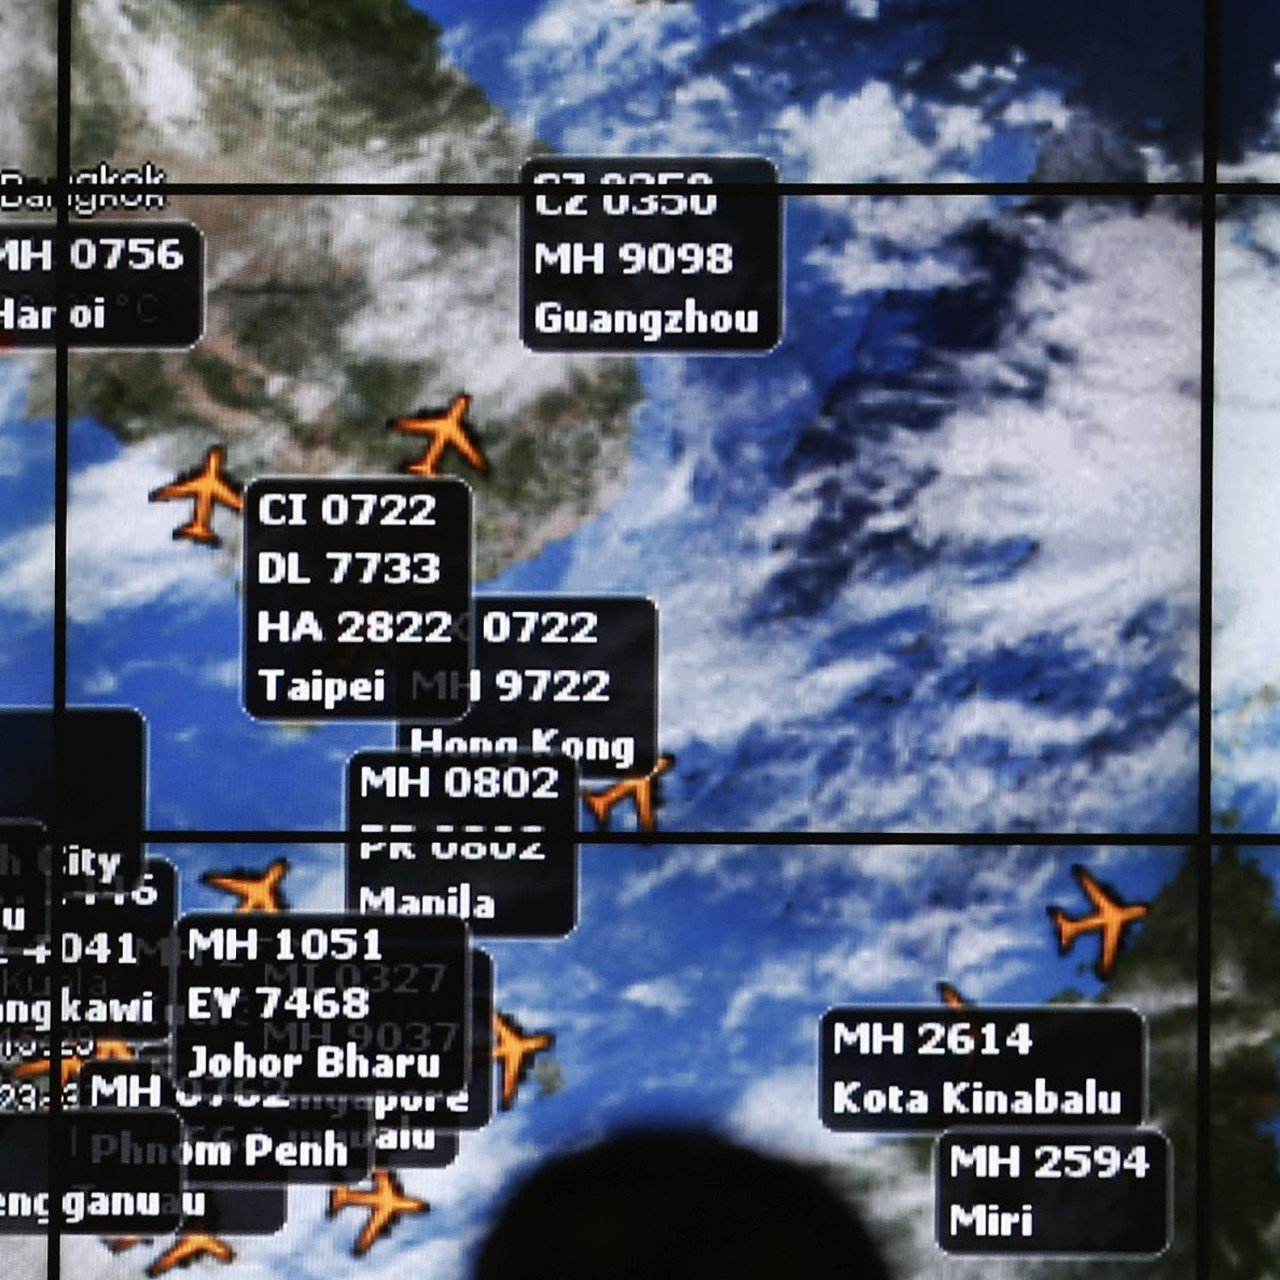 Malaysia Airlines flight 370 search: why give hope when